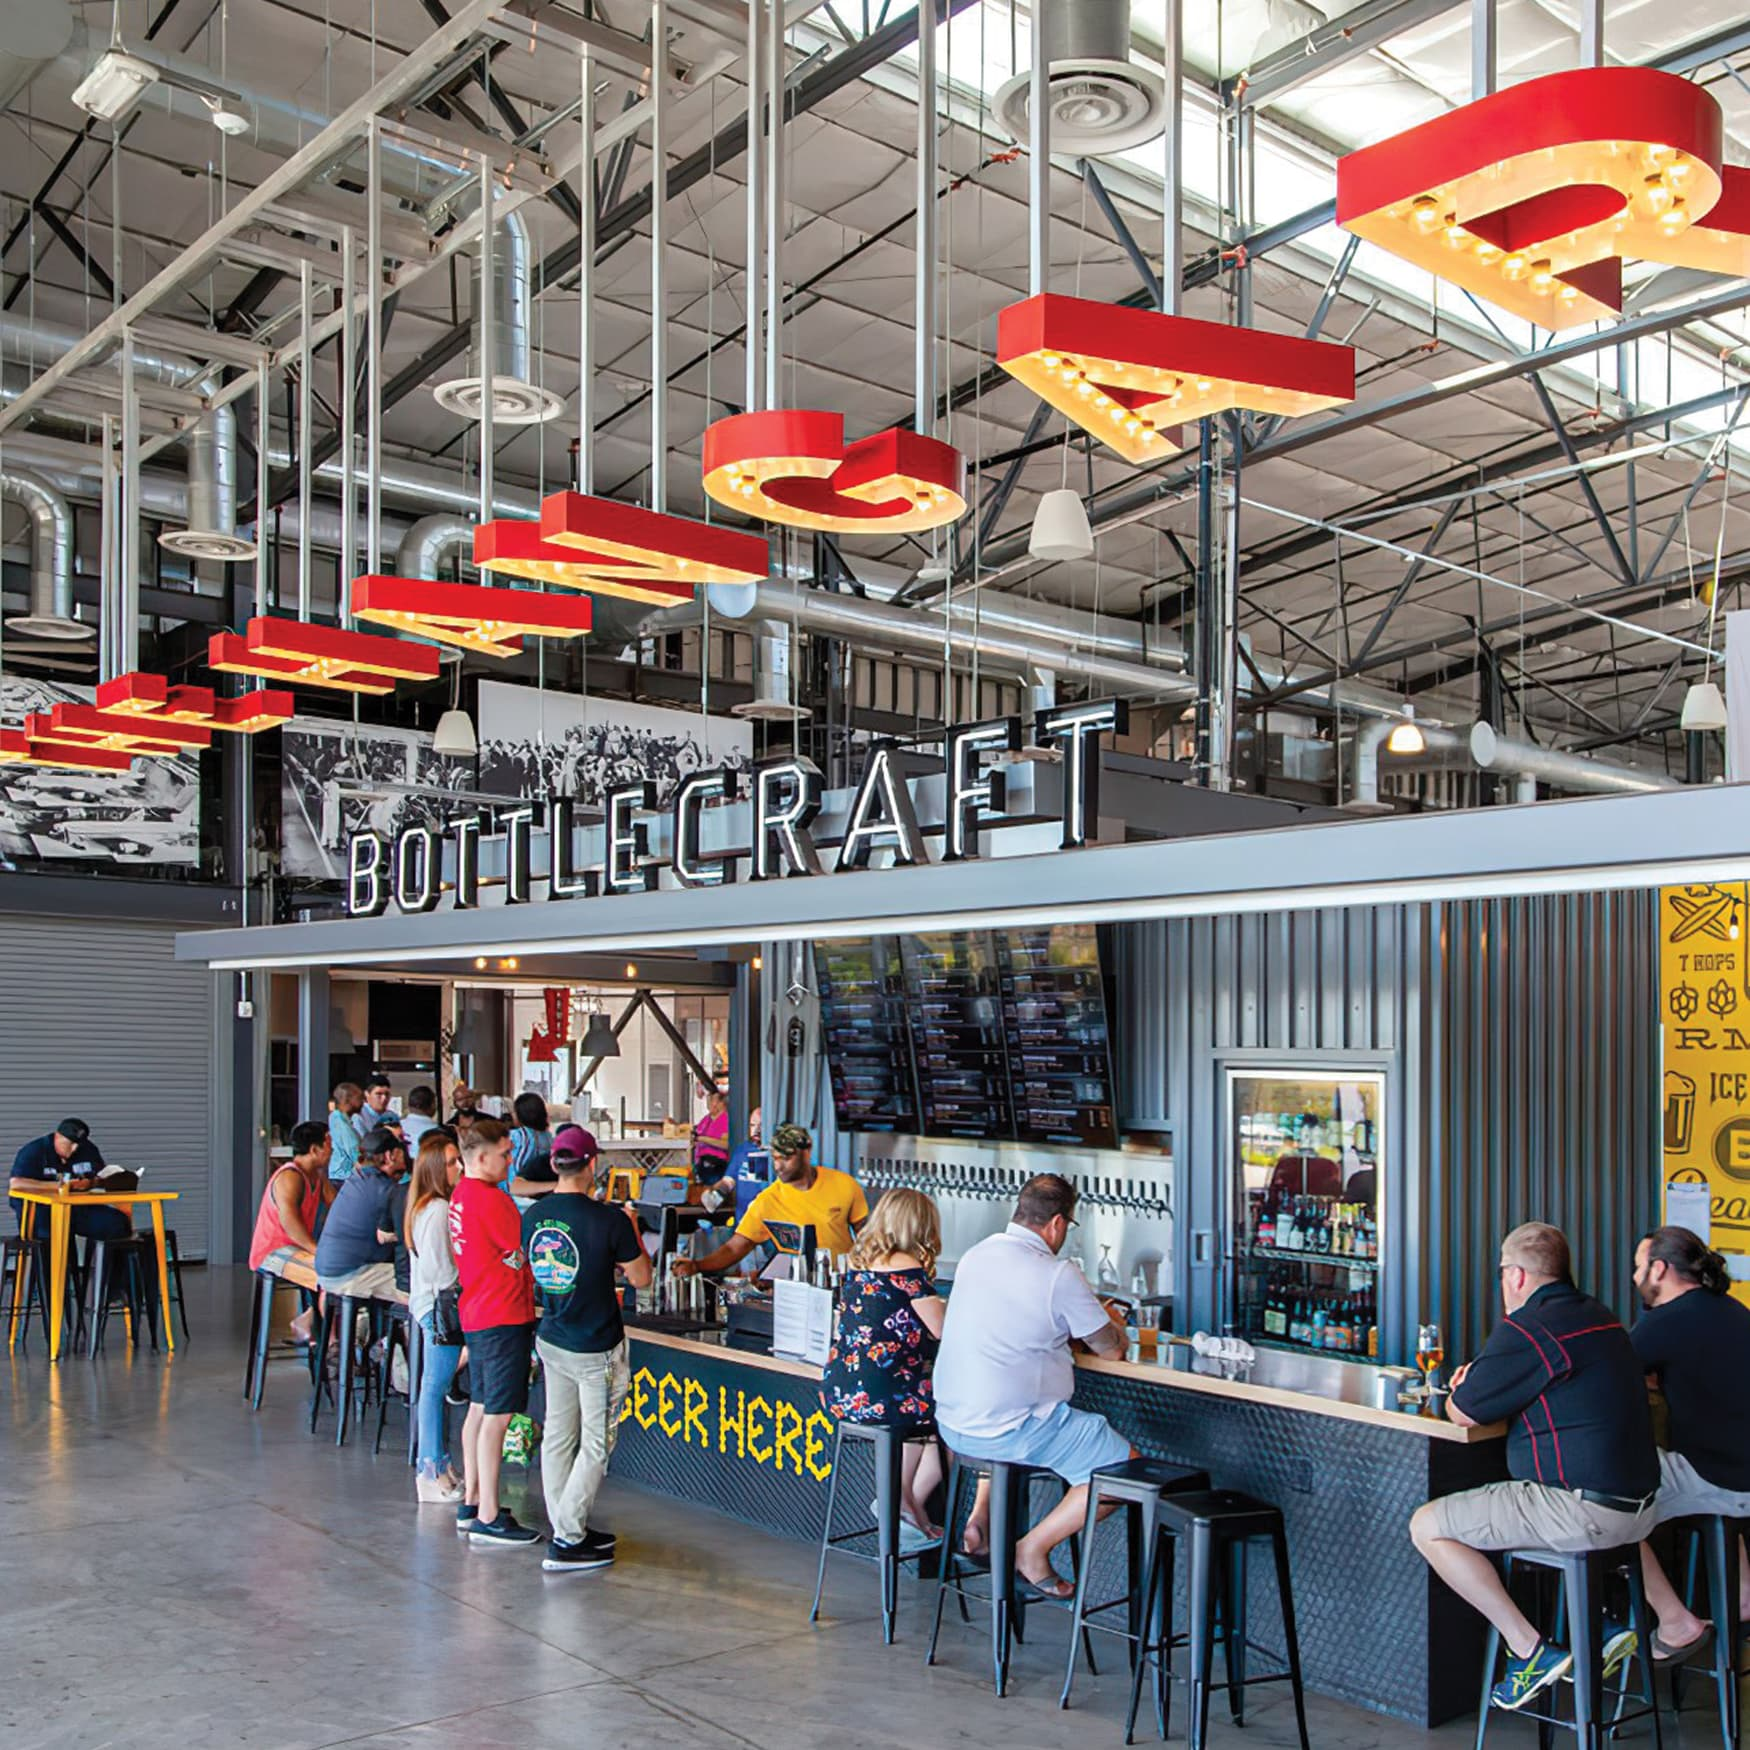 A photograph of signage inside The Hangar, a foodhall located at The Long Beach Exchange